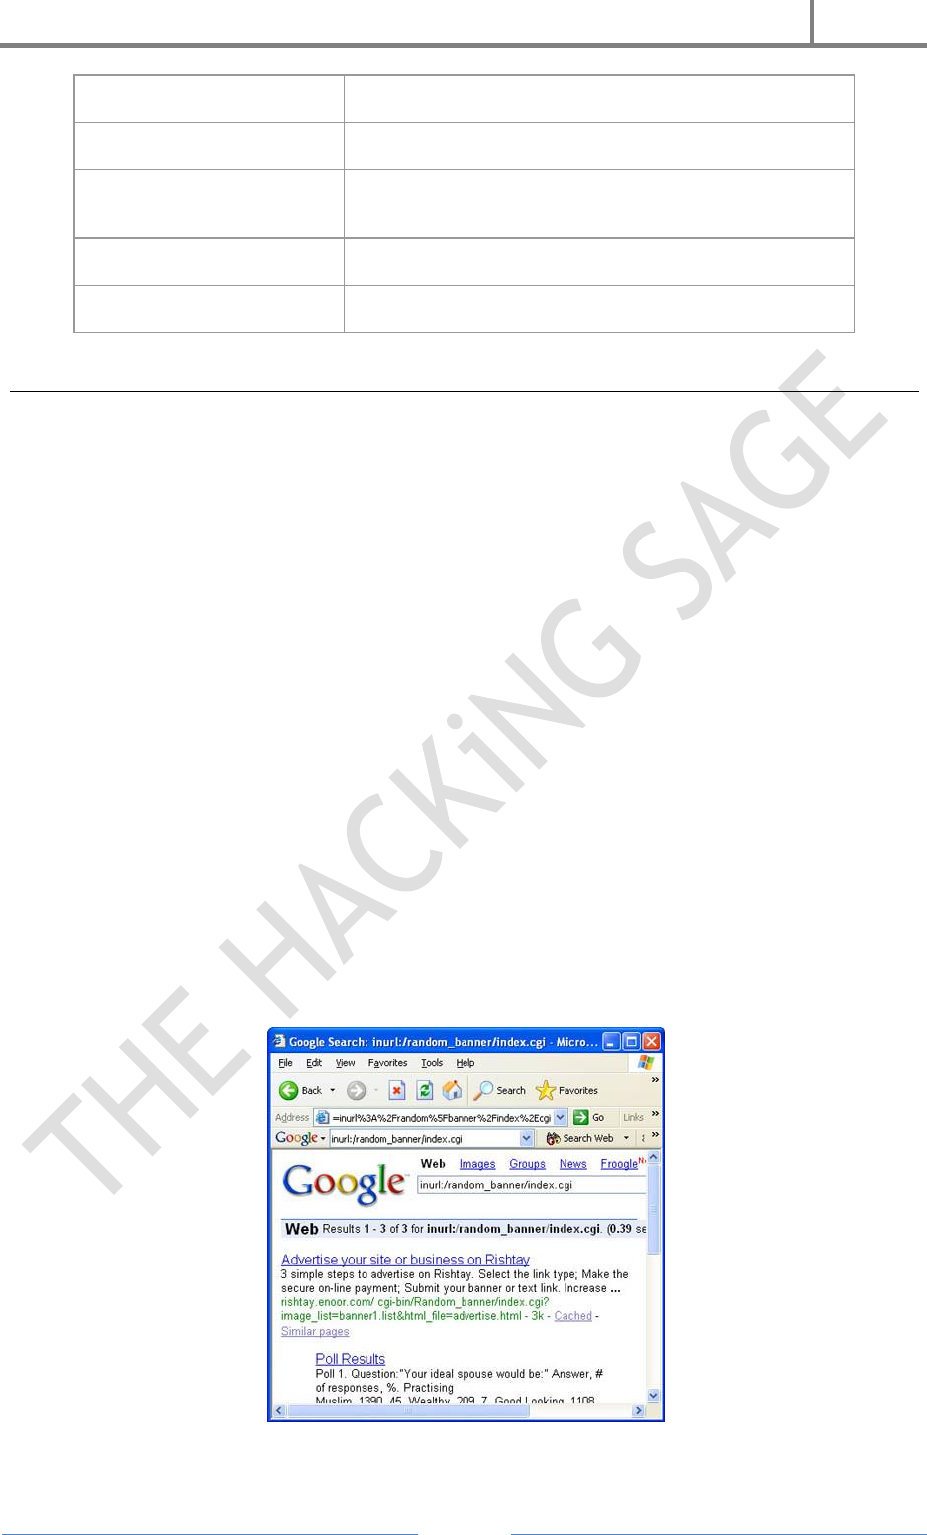 H4ck3r A Beginners Guide Edraw Is The Best Reliability Block Diagram Maker Download It Now